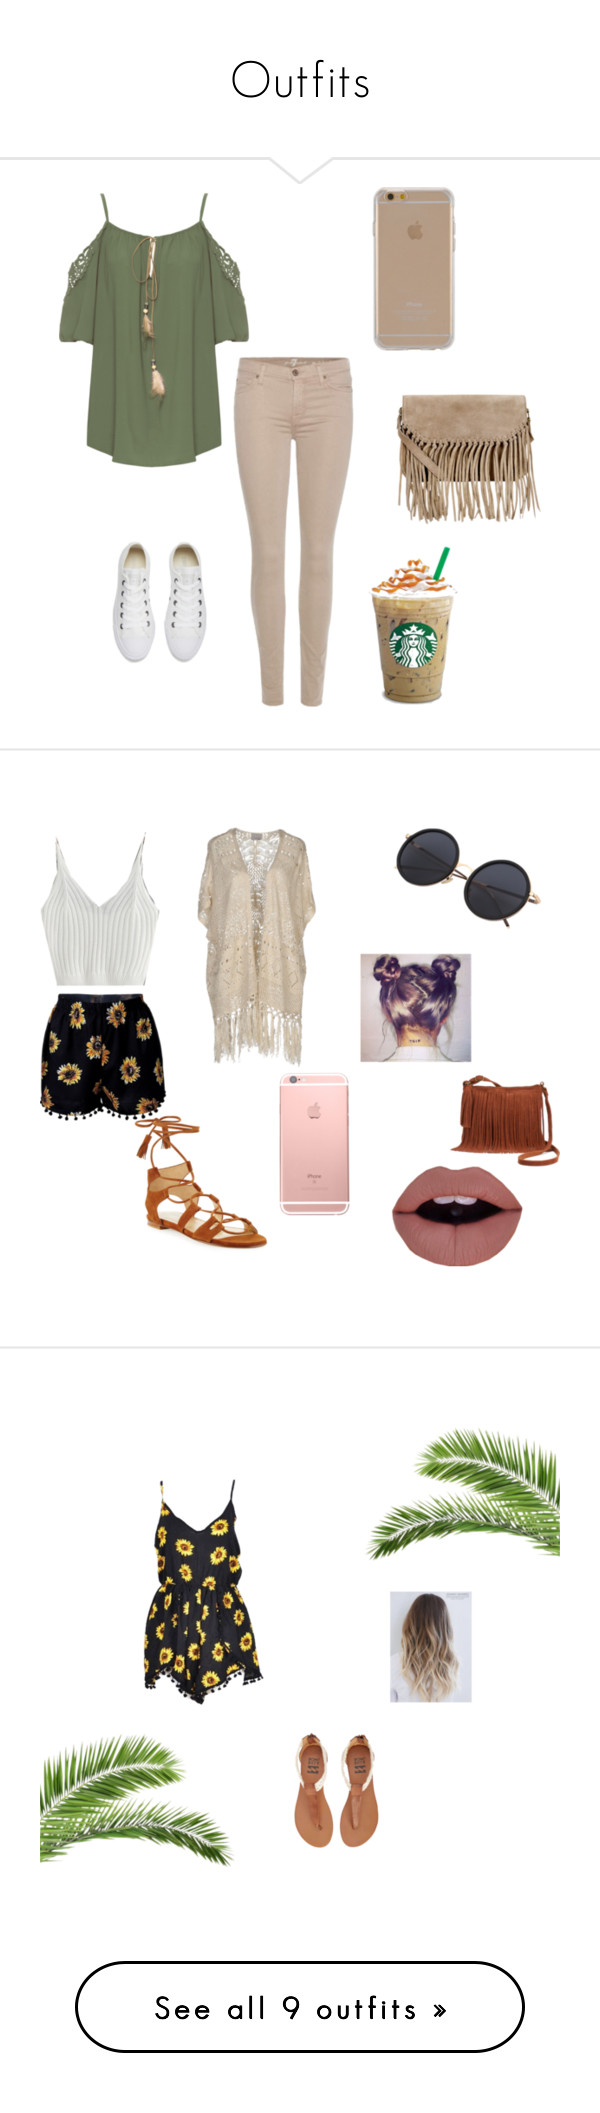 """""""Outfits"""" by ritasecrets on Polyvore featuring WearAll, 7 For All Mankind, Converse, Agent 18, Accessorize, WithChic, Stuart Weitzman, Vero Moda, SONOMA Goods for Life and Billabong"""